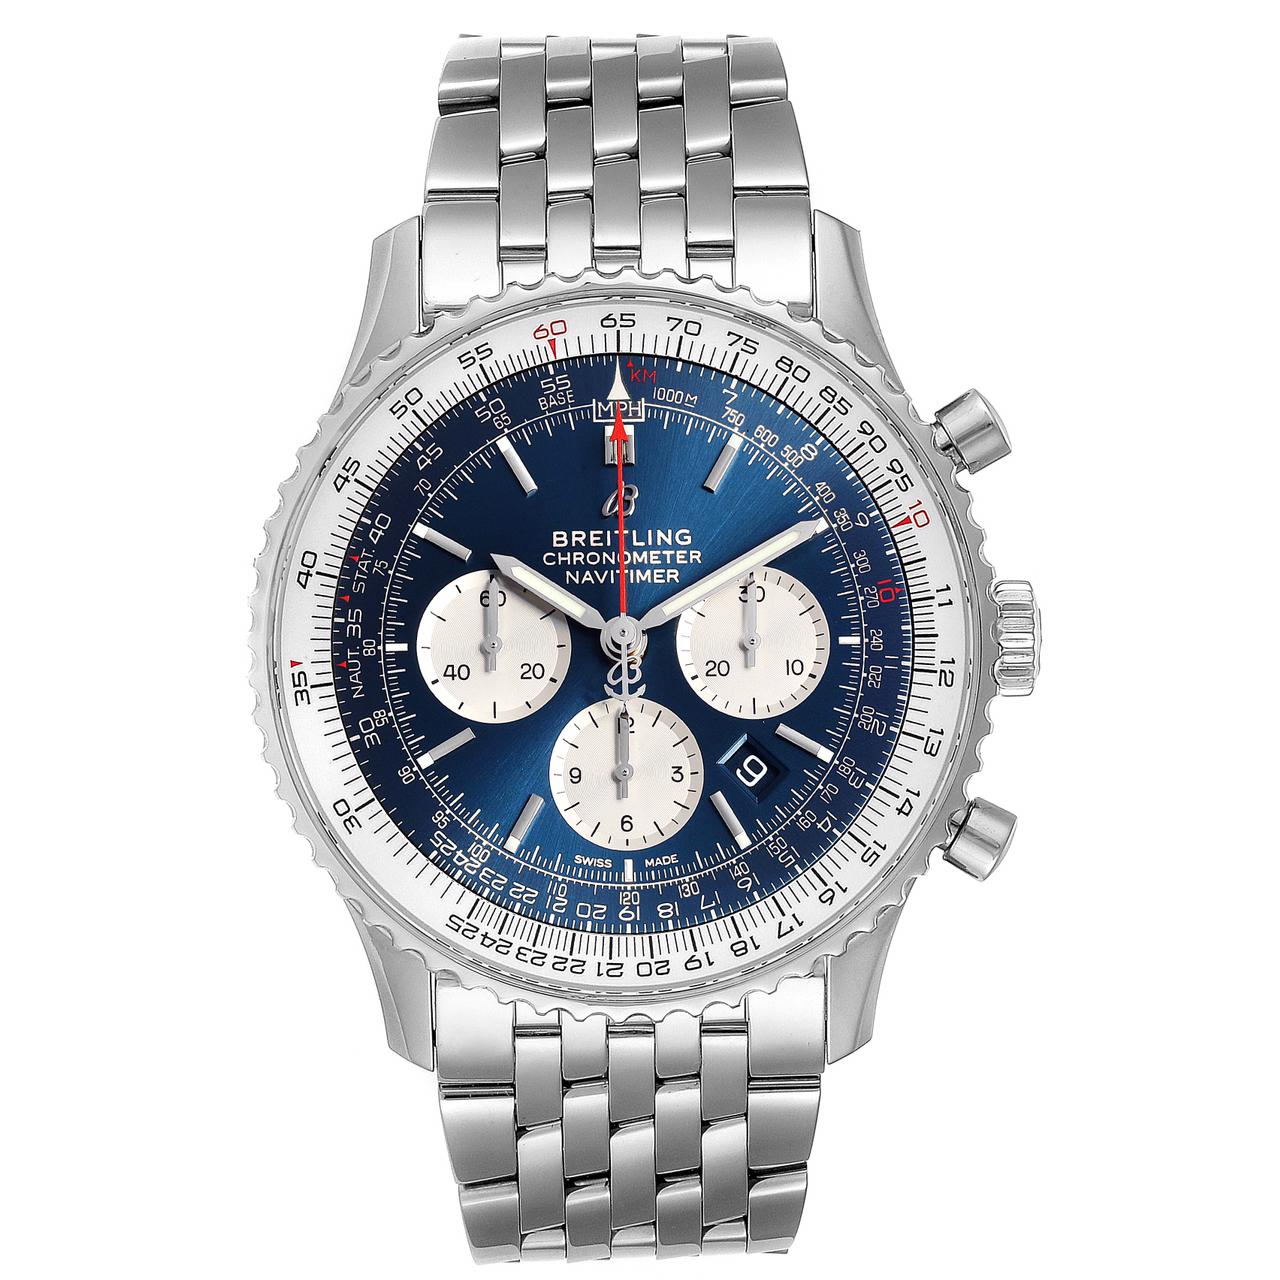 Luxury watches for sale